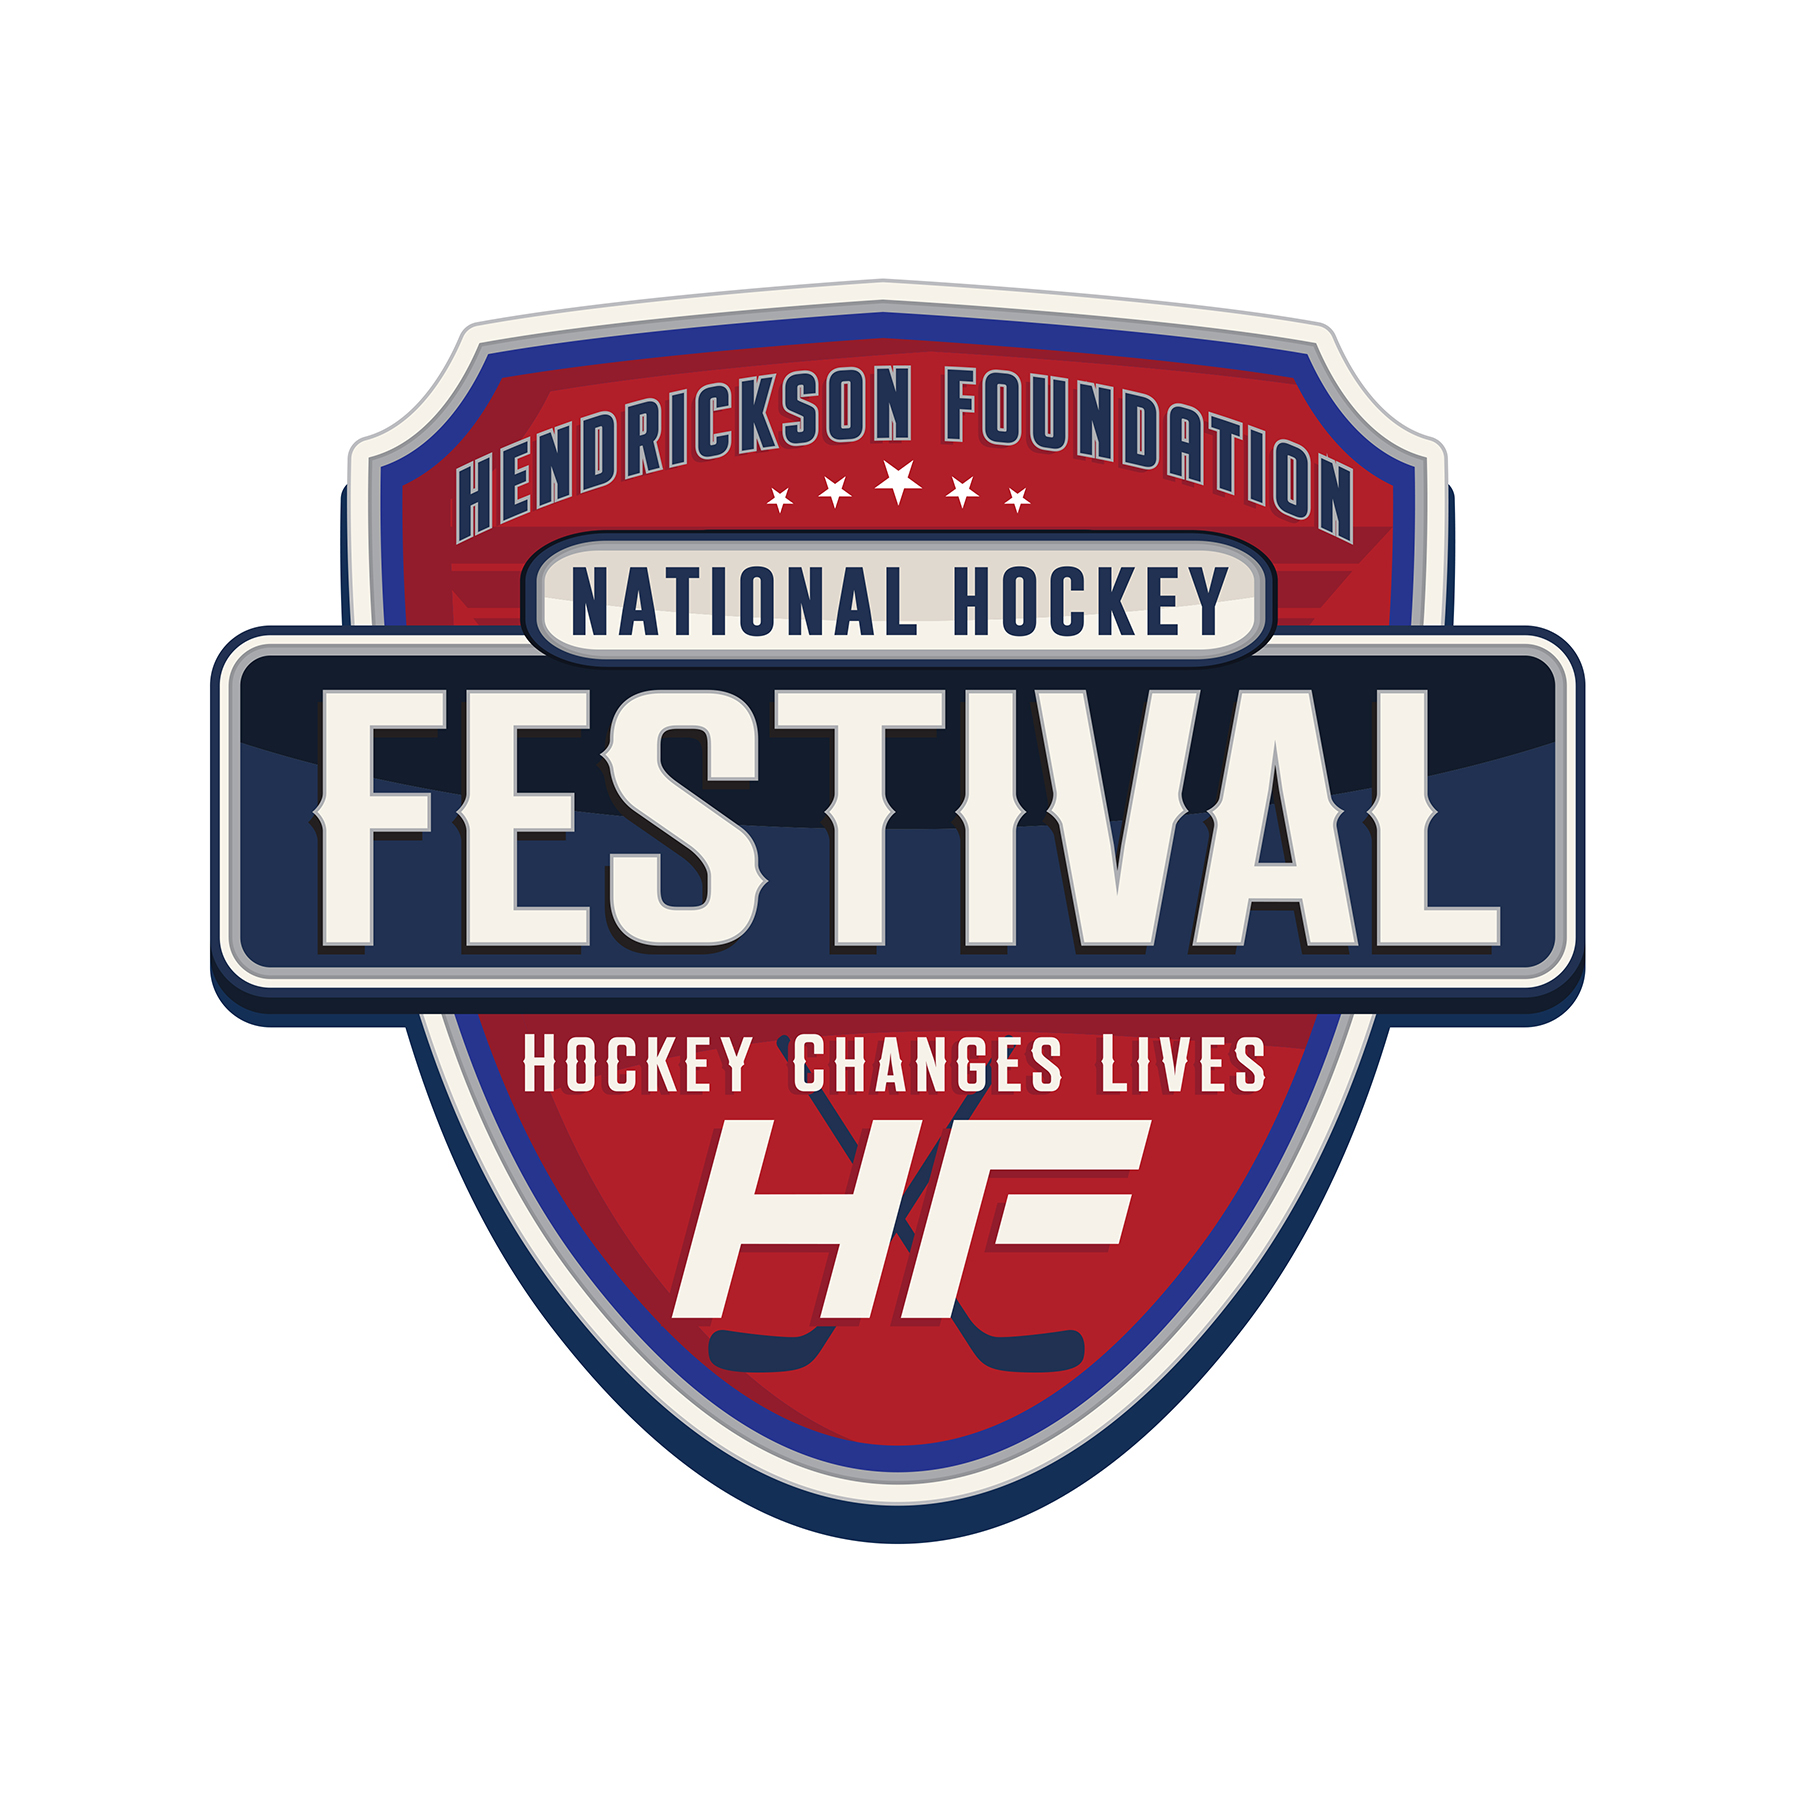 Hendrickson Foundation National Hockey Festival Logo Design